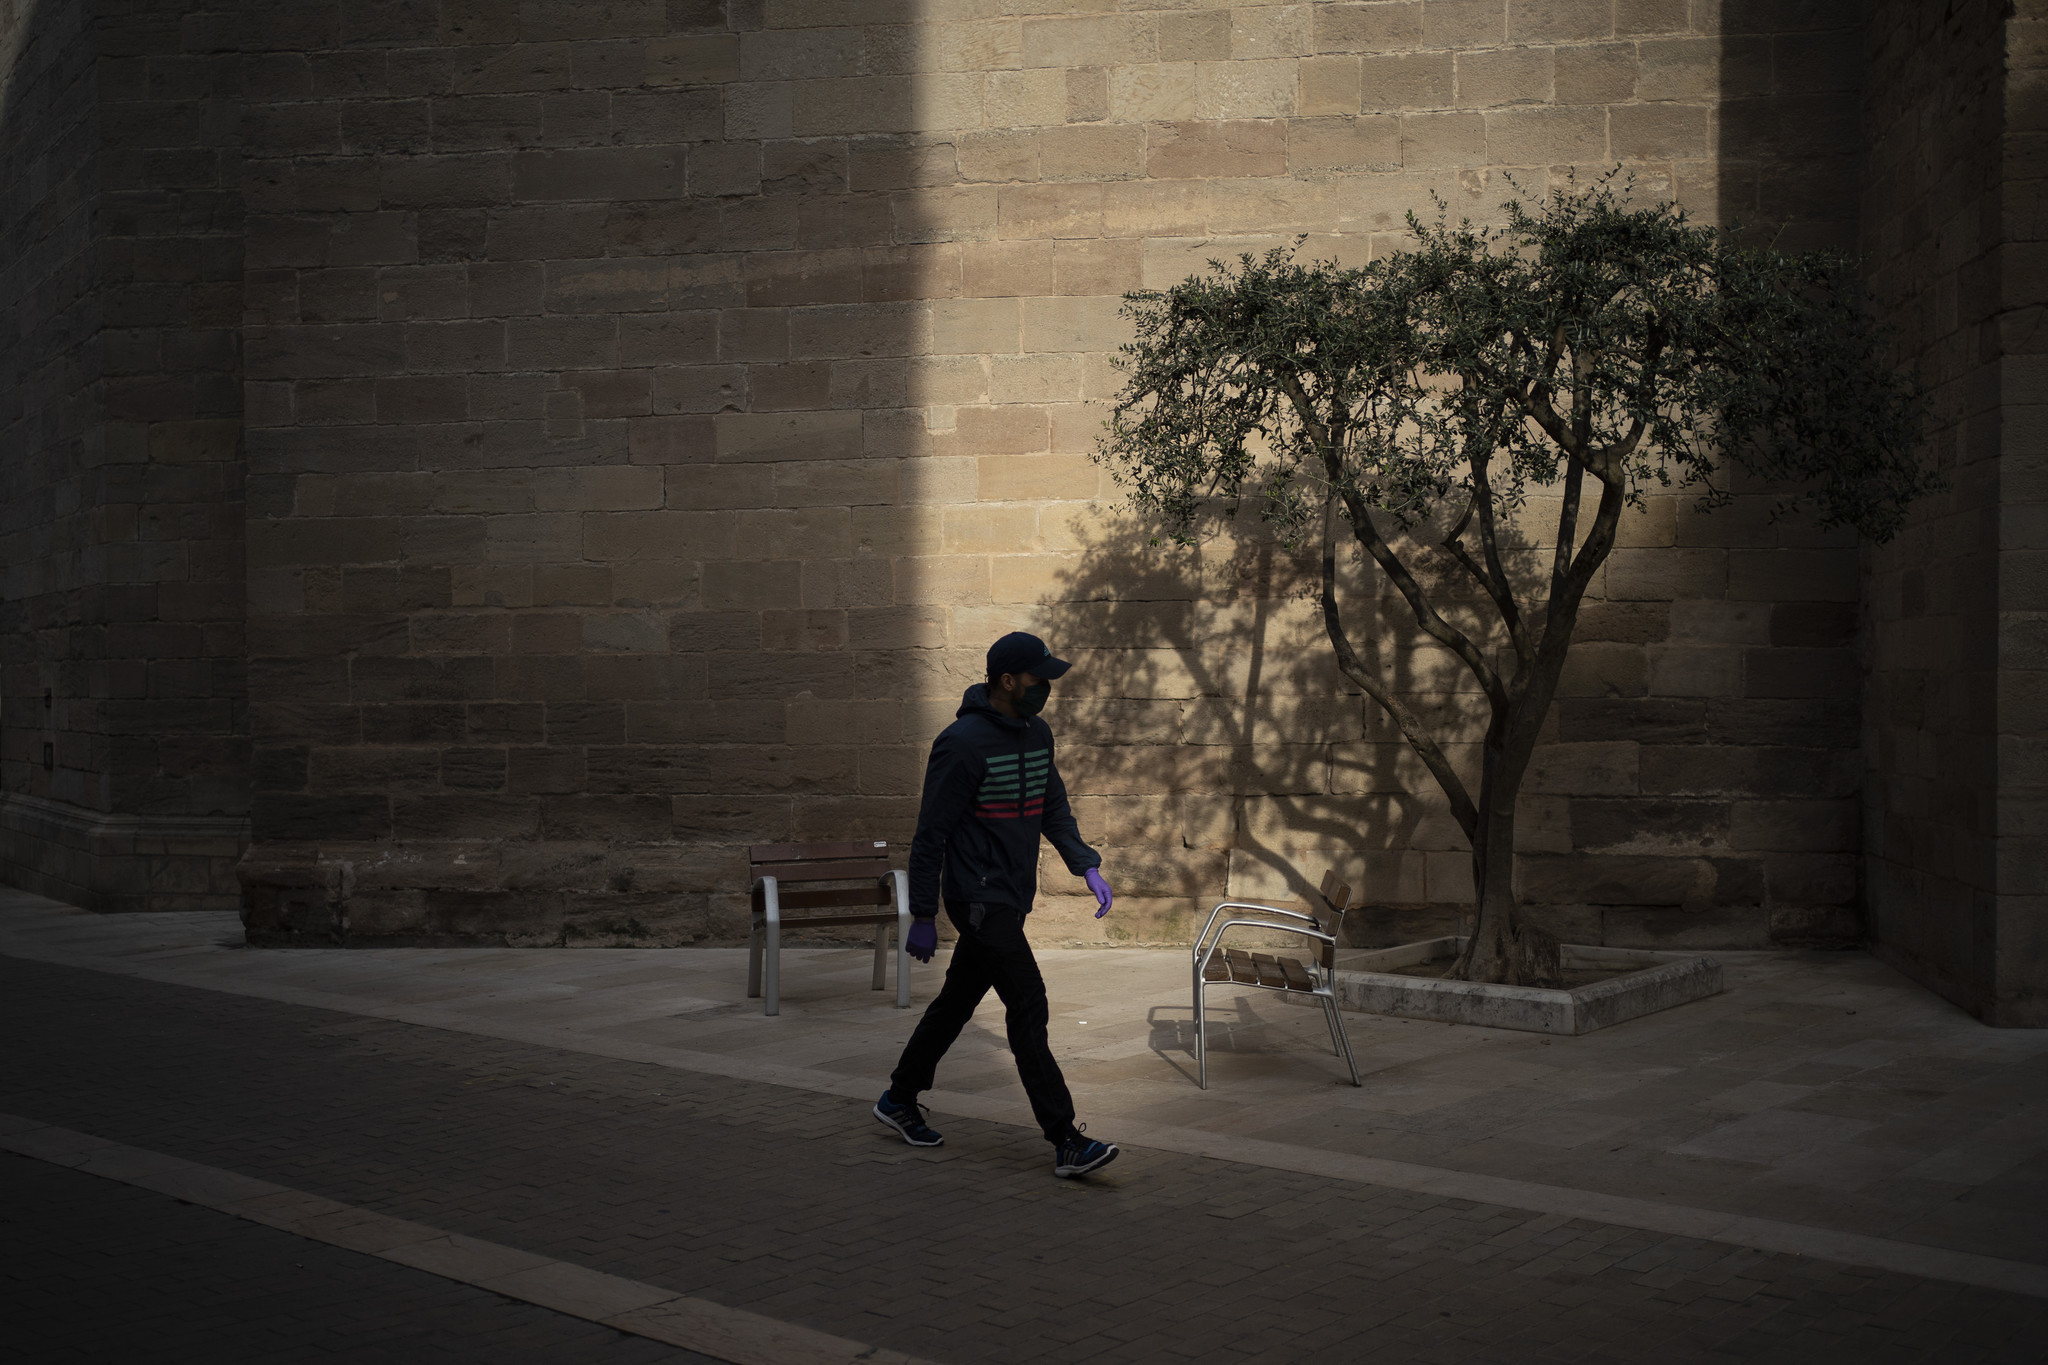 Spain's coronavirus death toll slows for fourth straight day